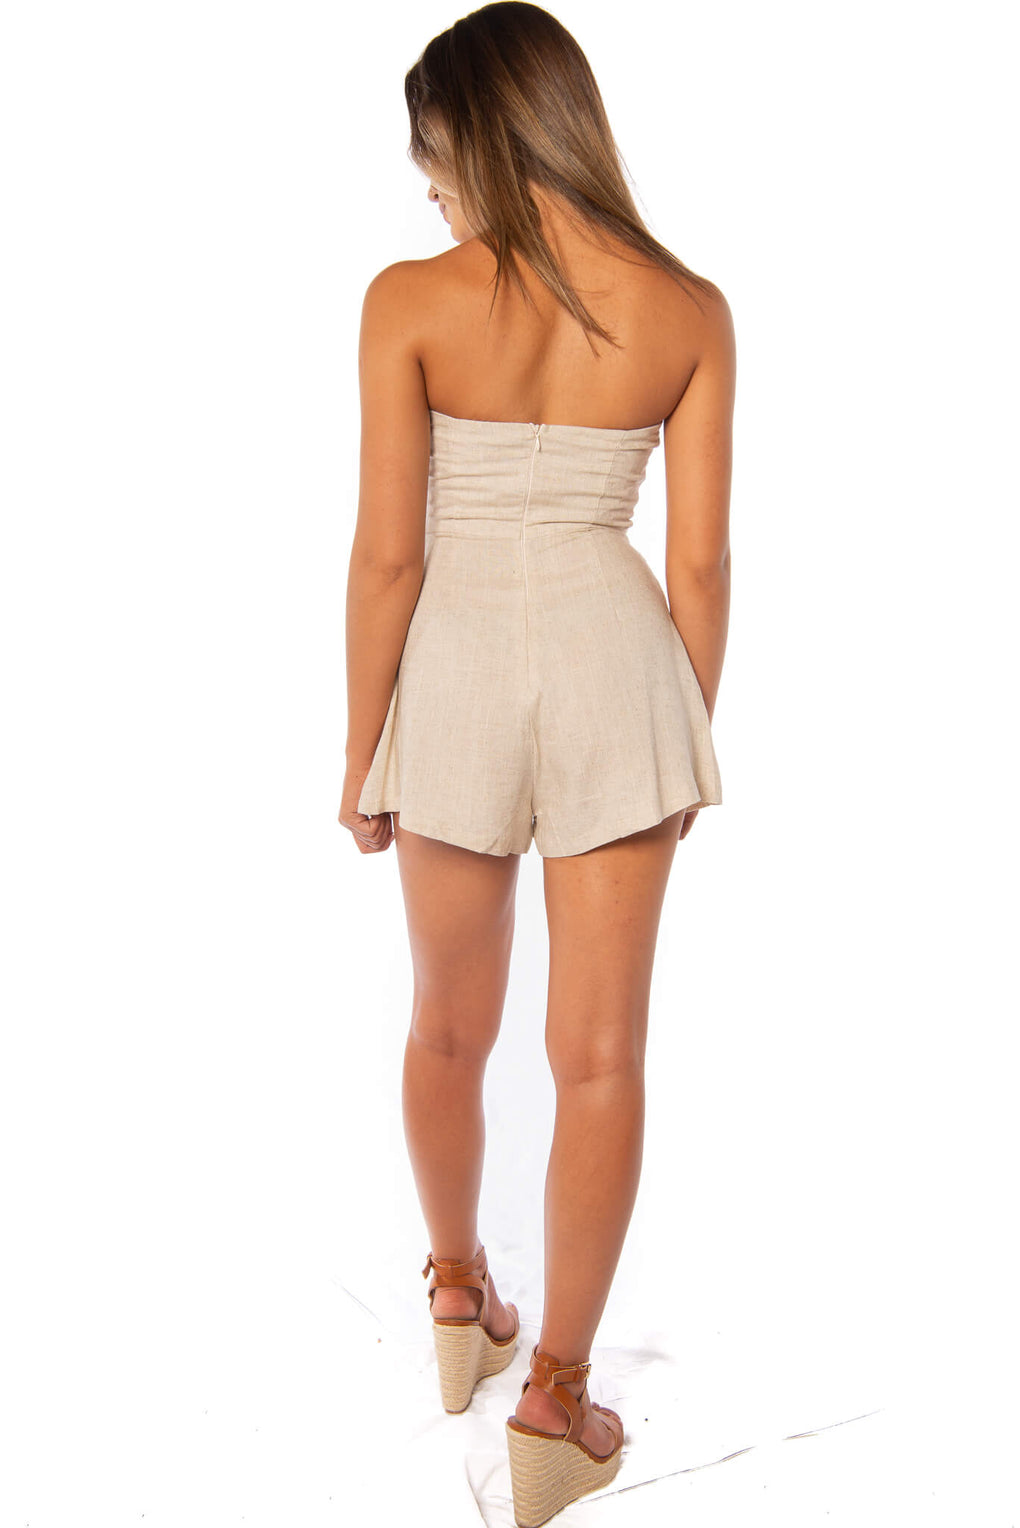 BANANAS PLAYSUIT